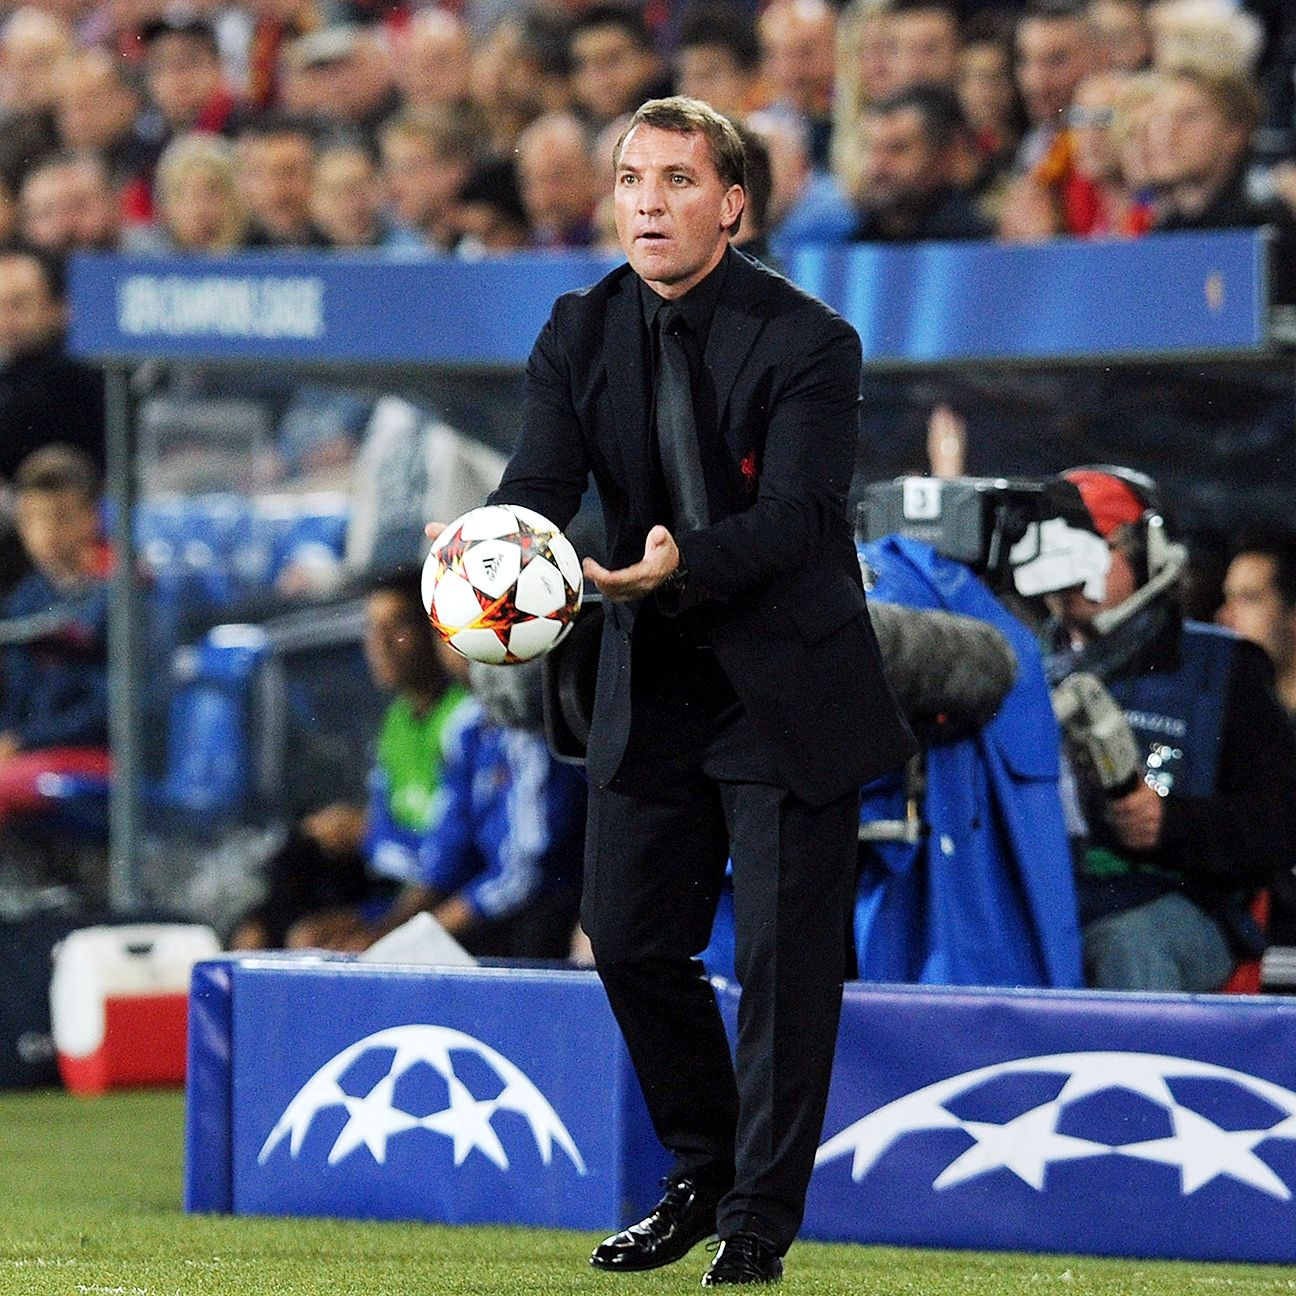 Brendan Rodgers' squad rotation decisions will come under heavy scrutiny as Liverpool return to Premier League action before facing Real Madrid in the Champions League.